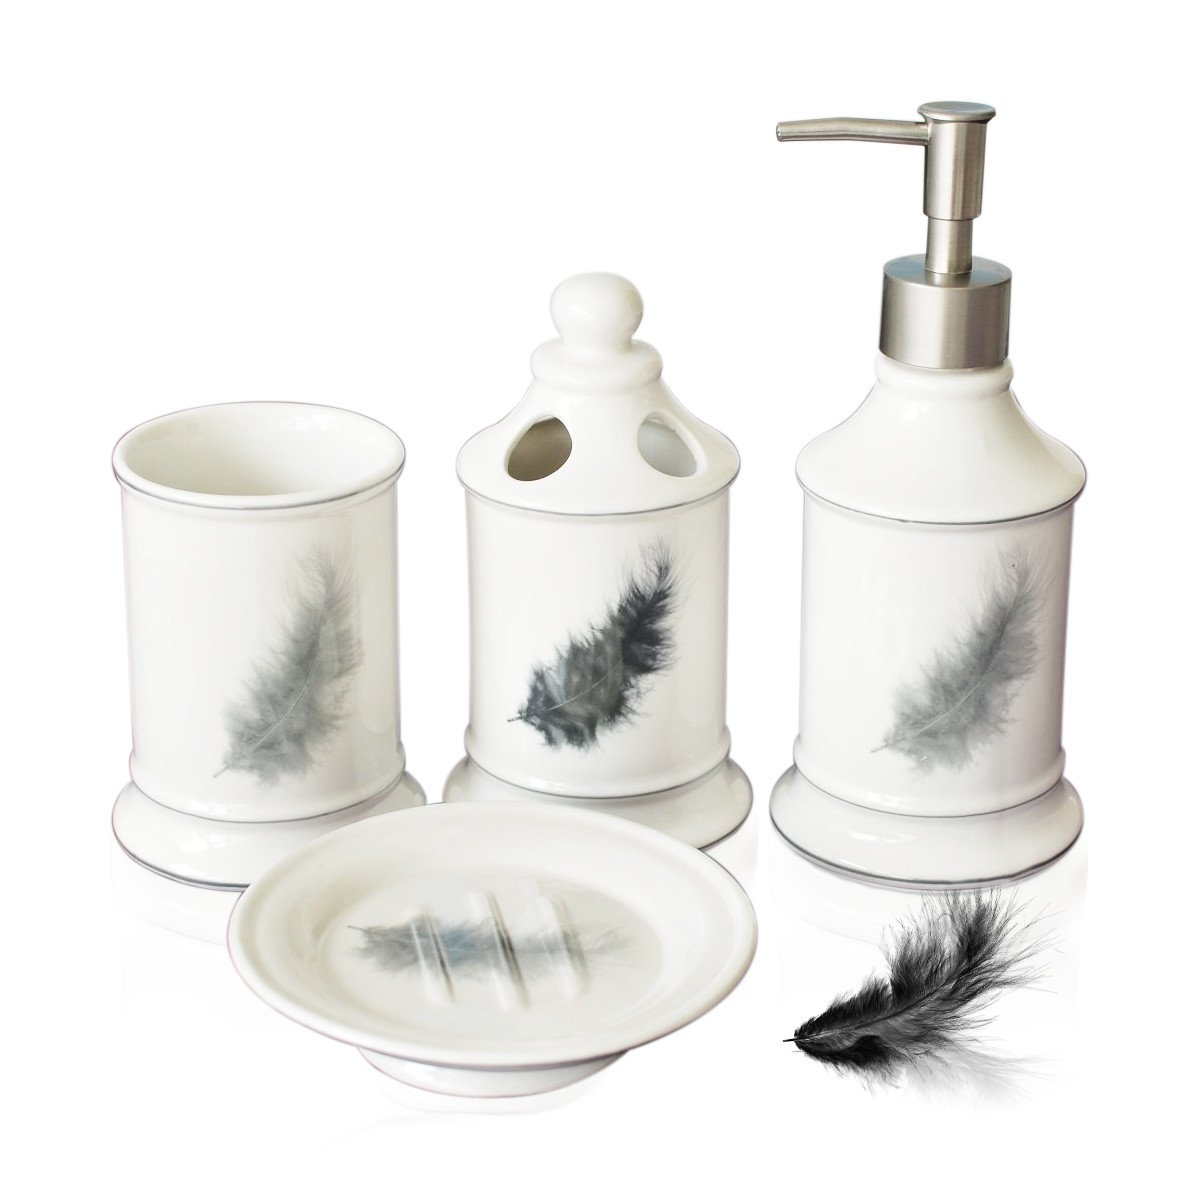 Amazon.com: Brandream Vintage 4-Piece Ceramic Bath Accessory Set ...